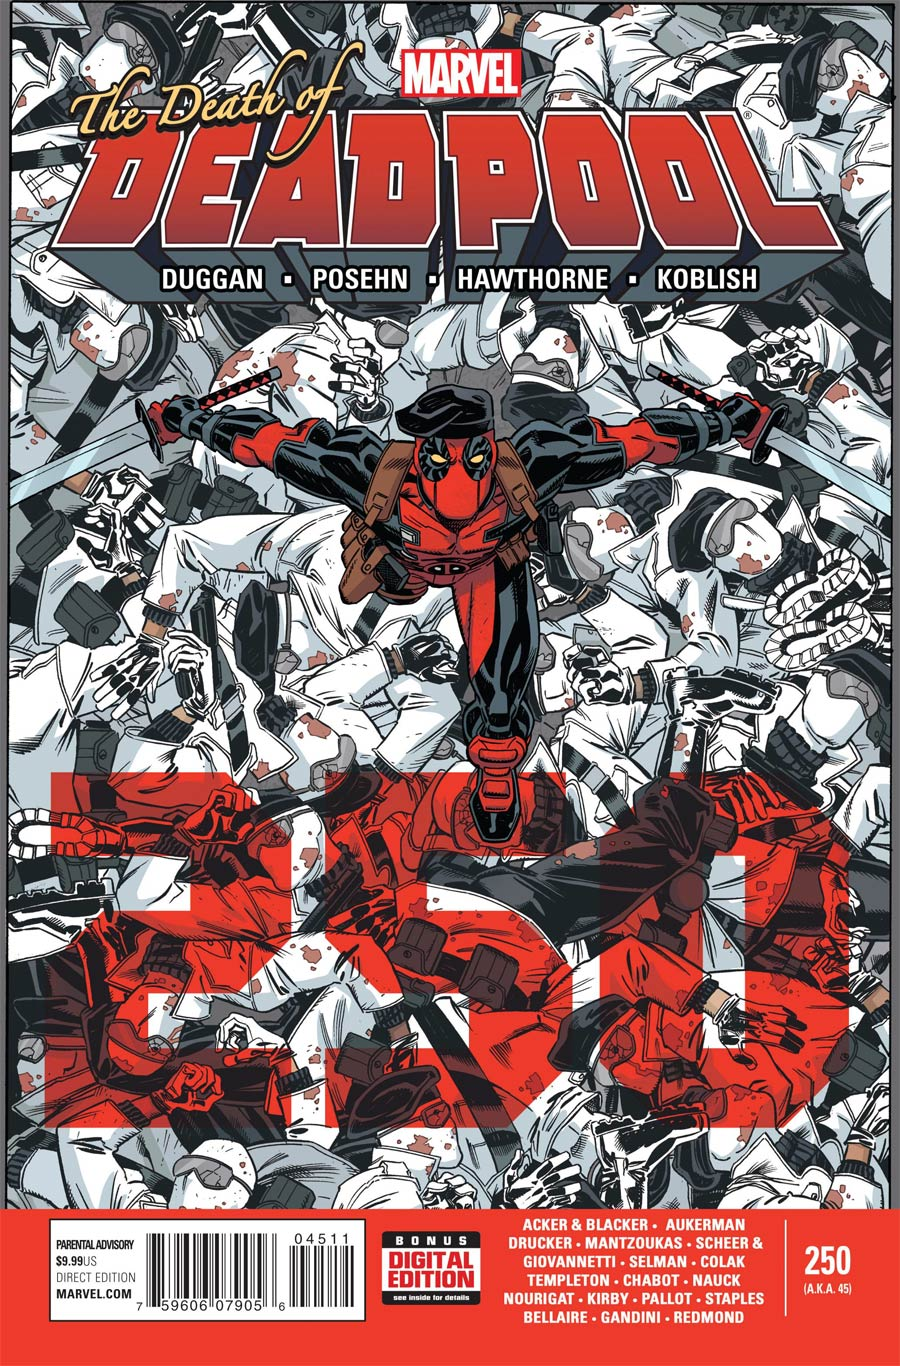 Deadpool Vol 4 #45 (250th Issue) Cover A Regular Scott Koblish Cover